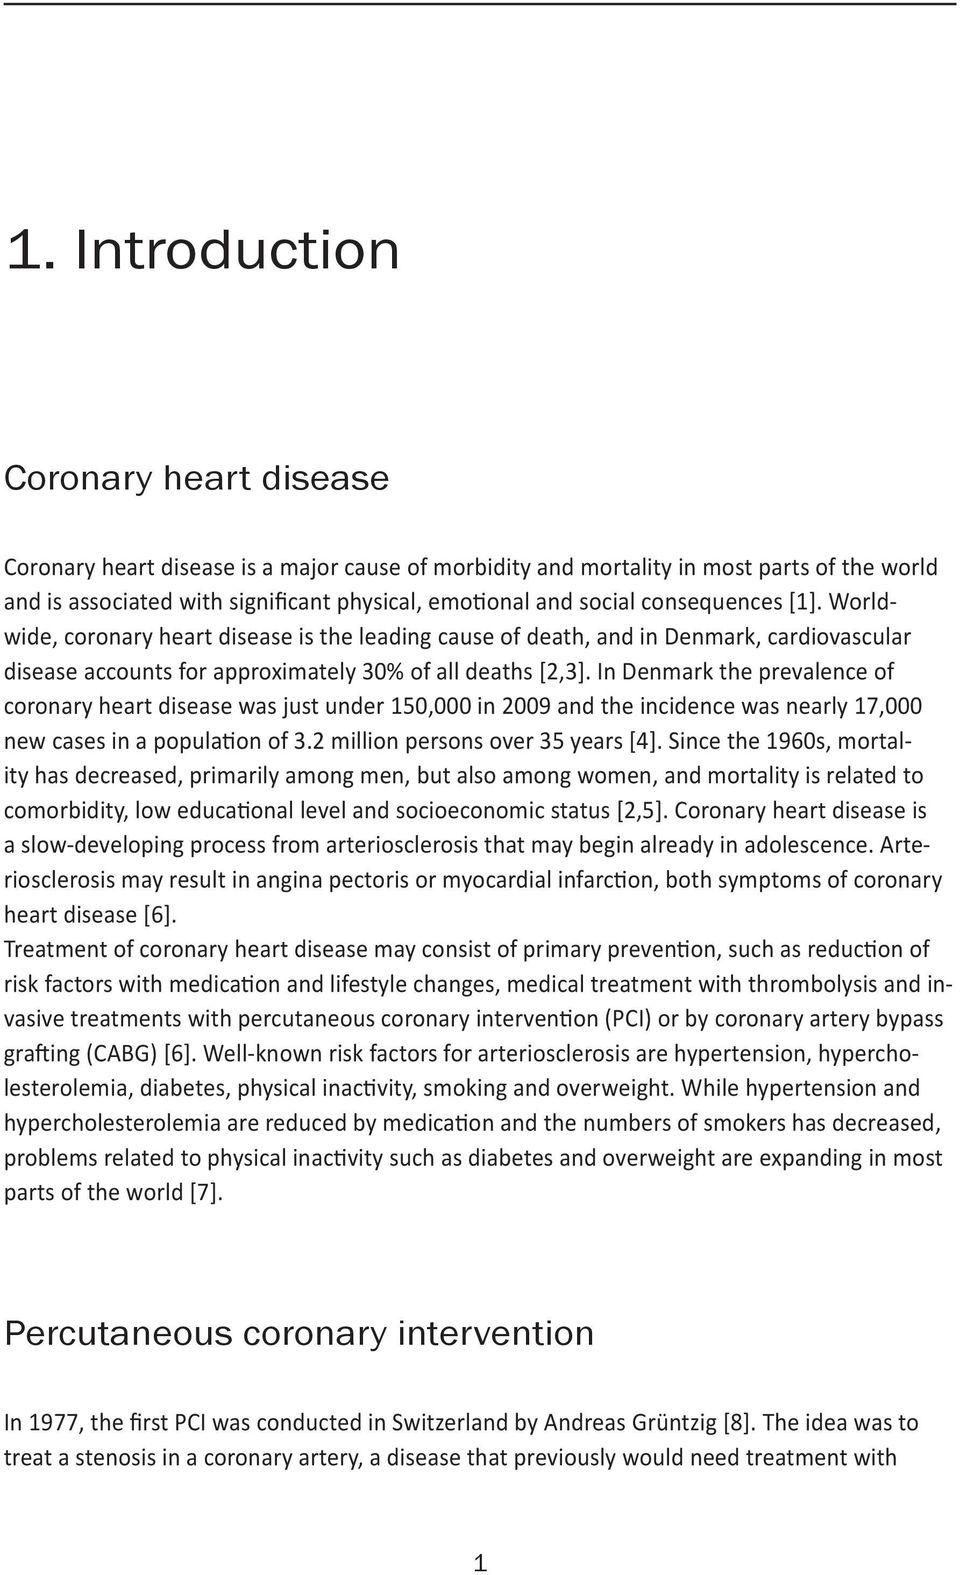 In Denmark the prevalence of coronary heart disease was just under 150,000 in 2009 and the incidence was nearly 17,000 new cases in a population of 3.2 million persons over 35 years [4].